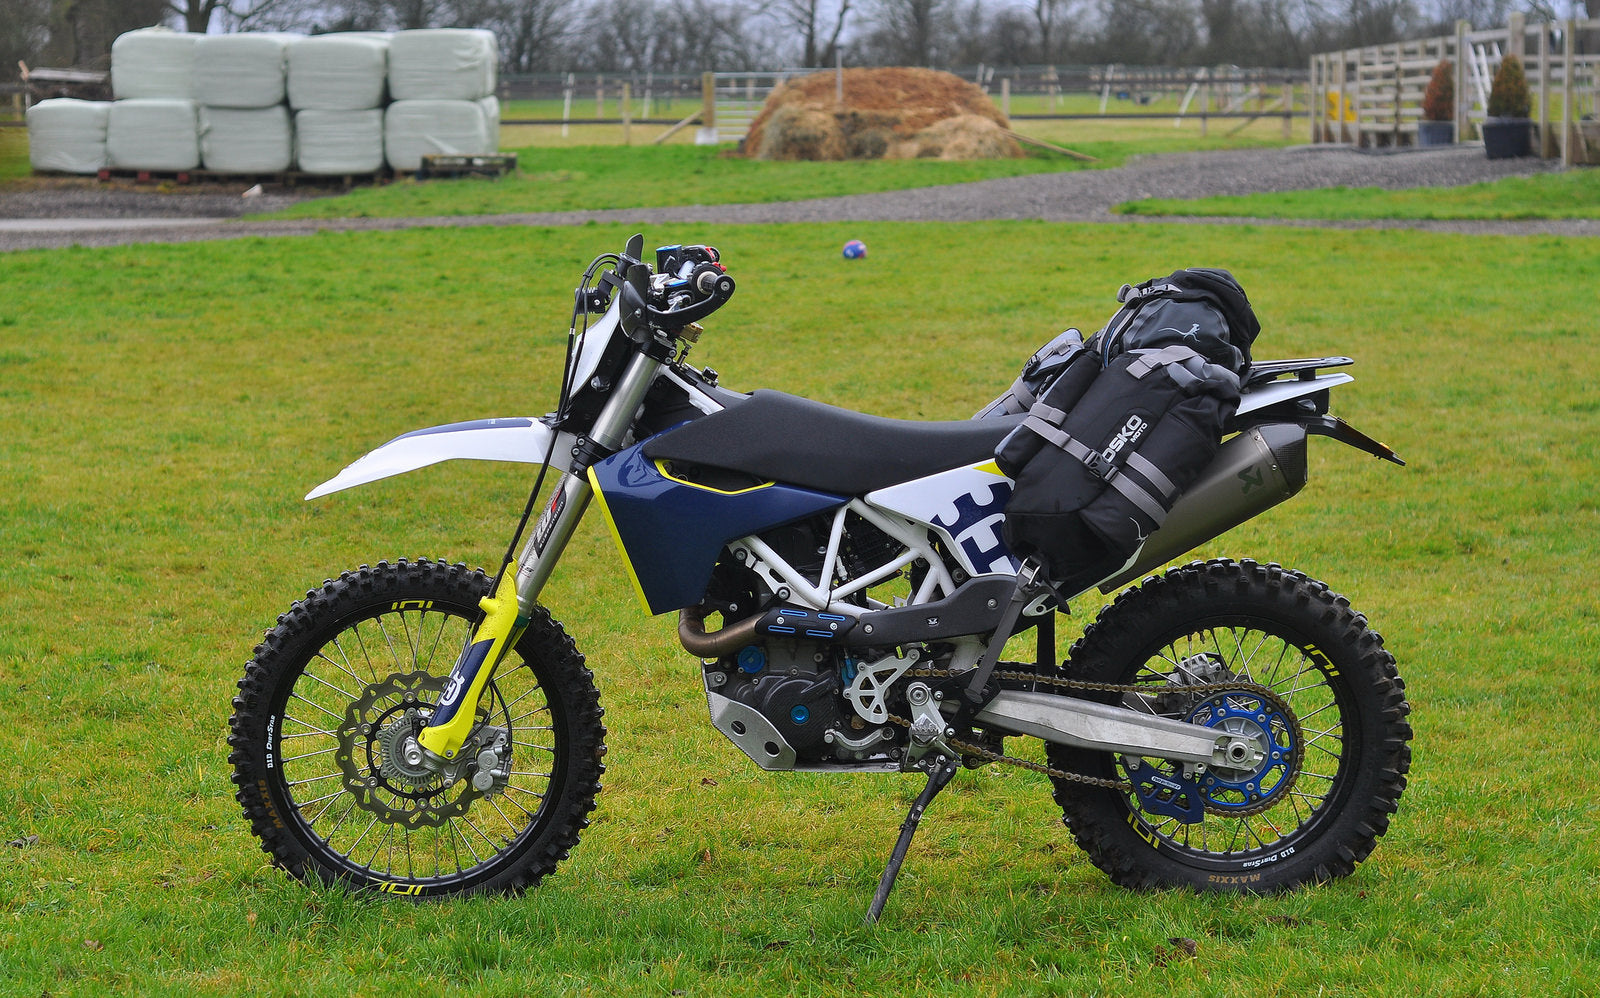 Husqvarna 701 Enduro, Perun moto Luggage rack and Heel guards and Mosko moto R40